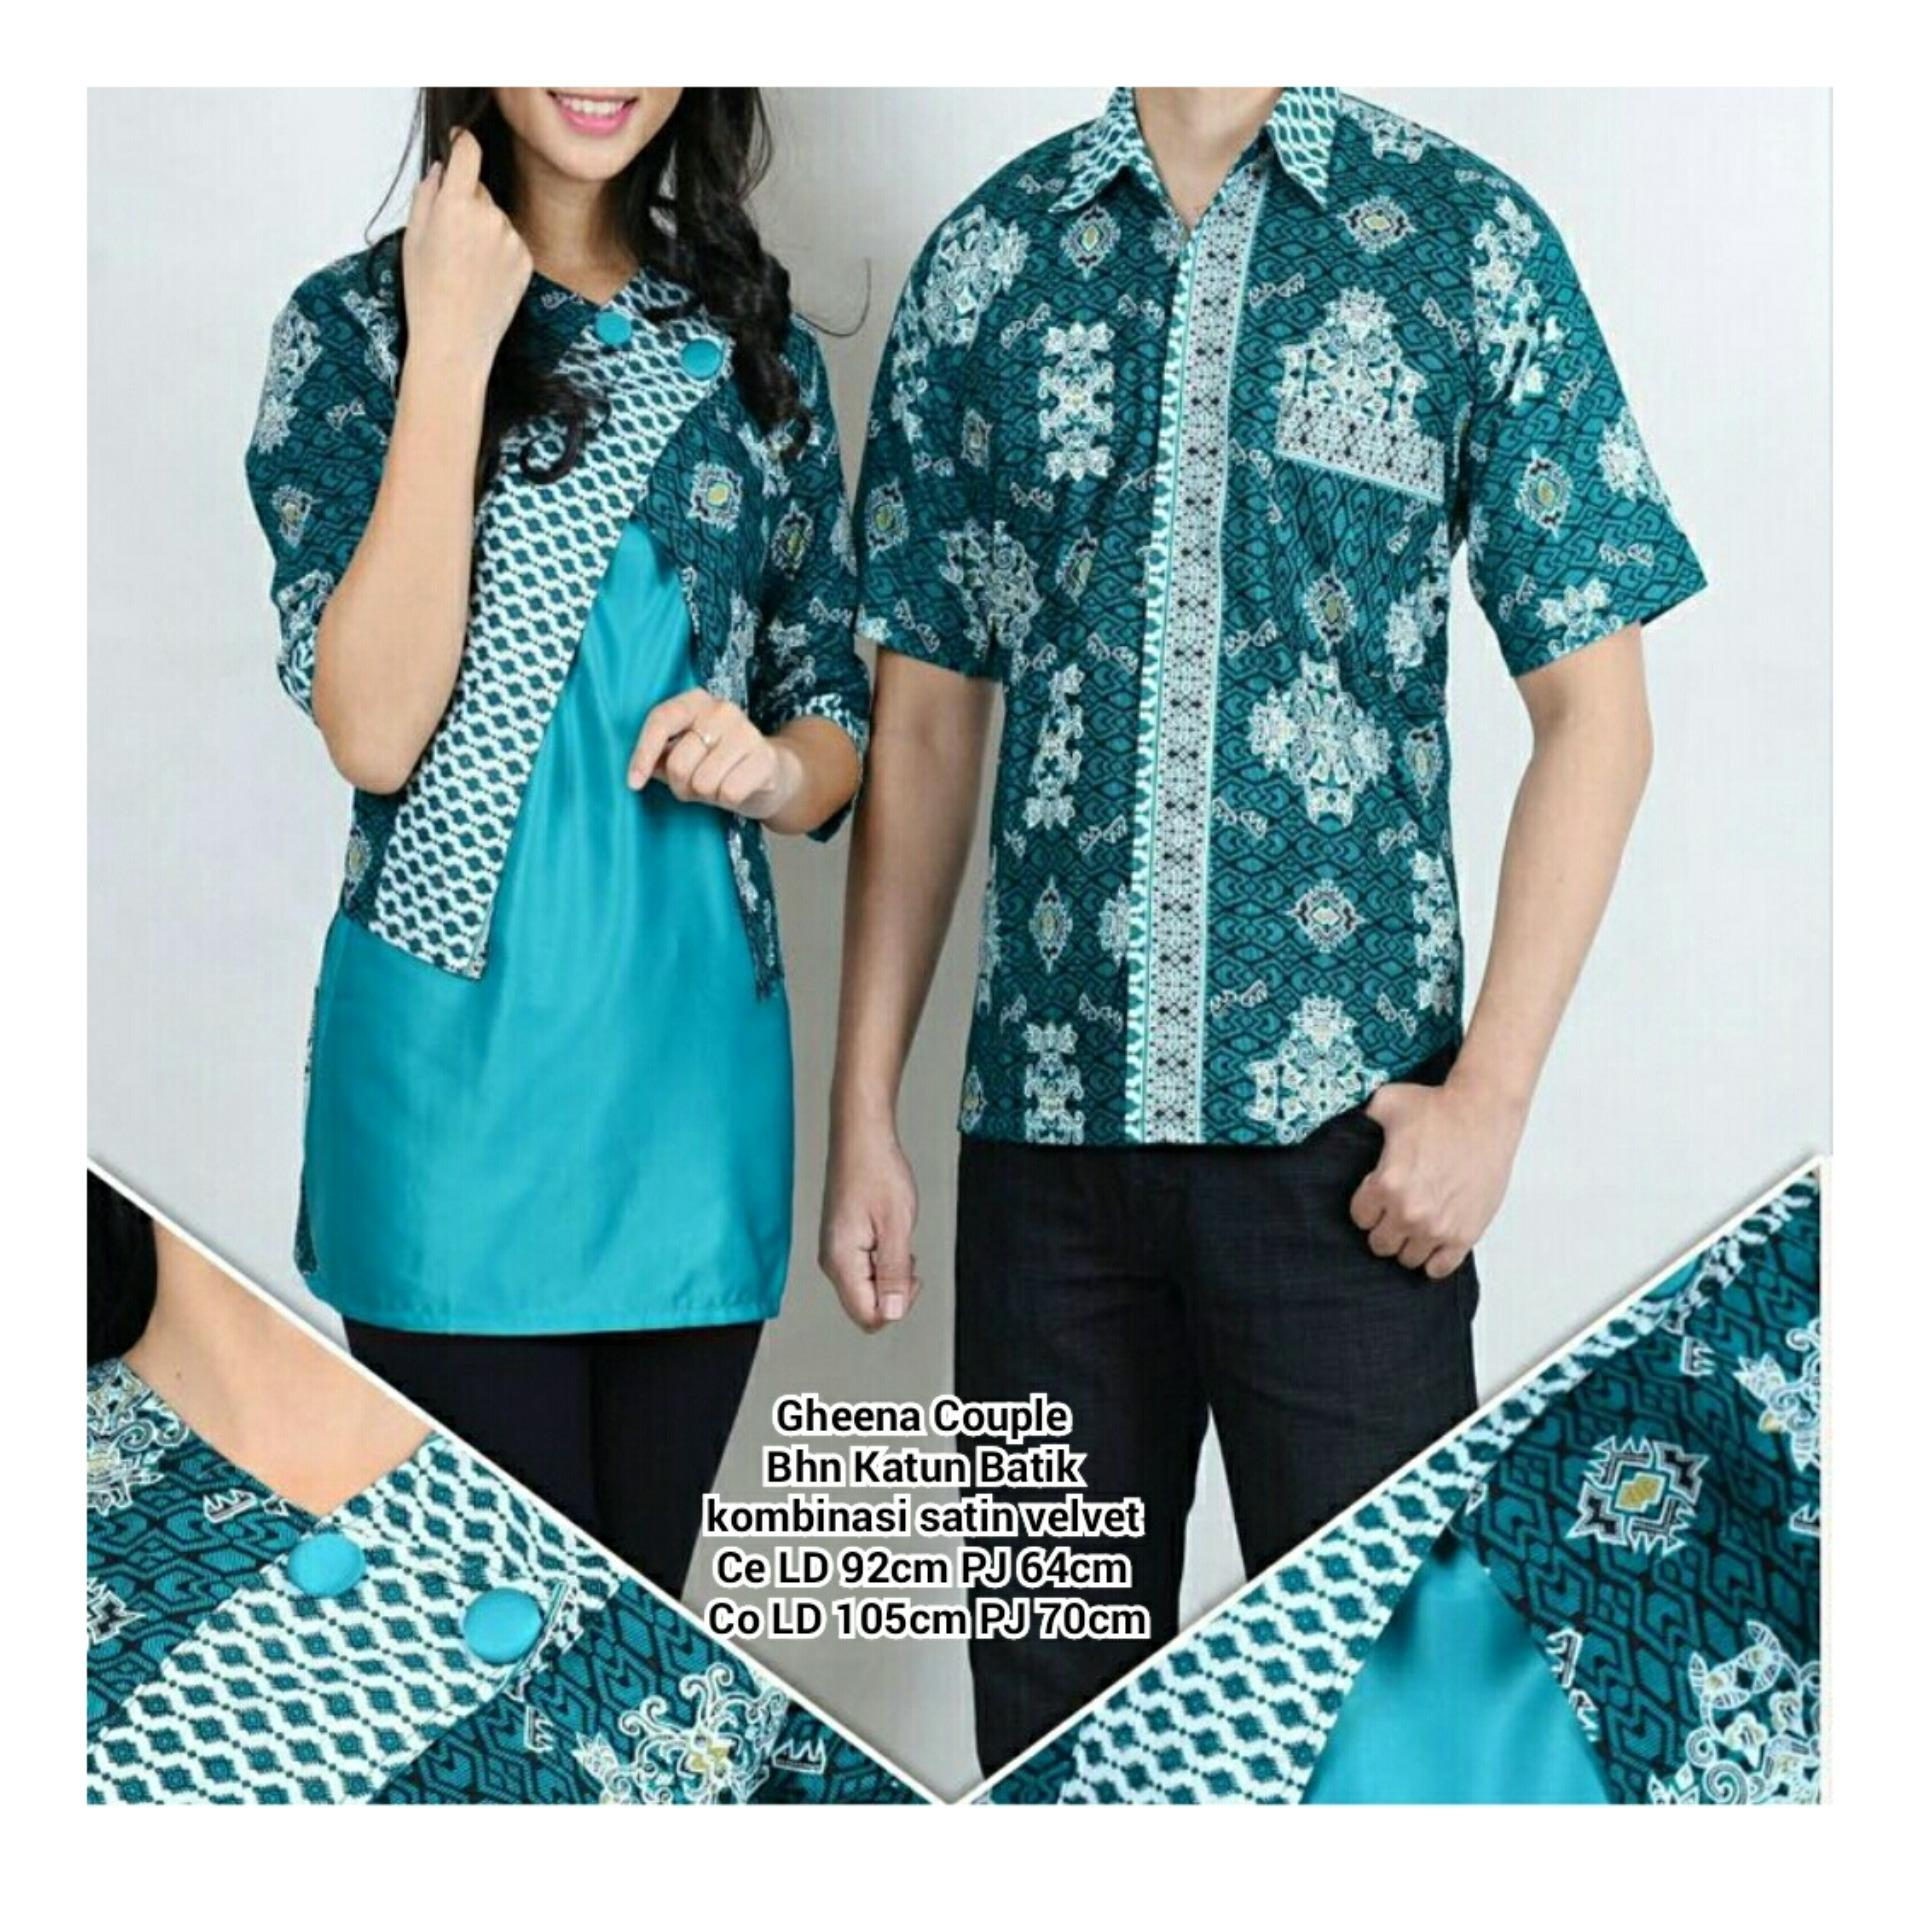 Kualitas Qx Sb Collection Couple Atasan Kemeja Batik Gheena Hijau Sb Collection